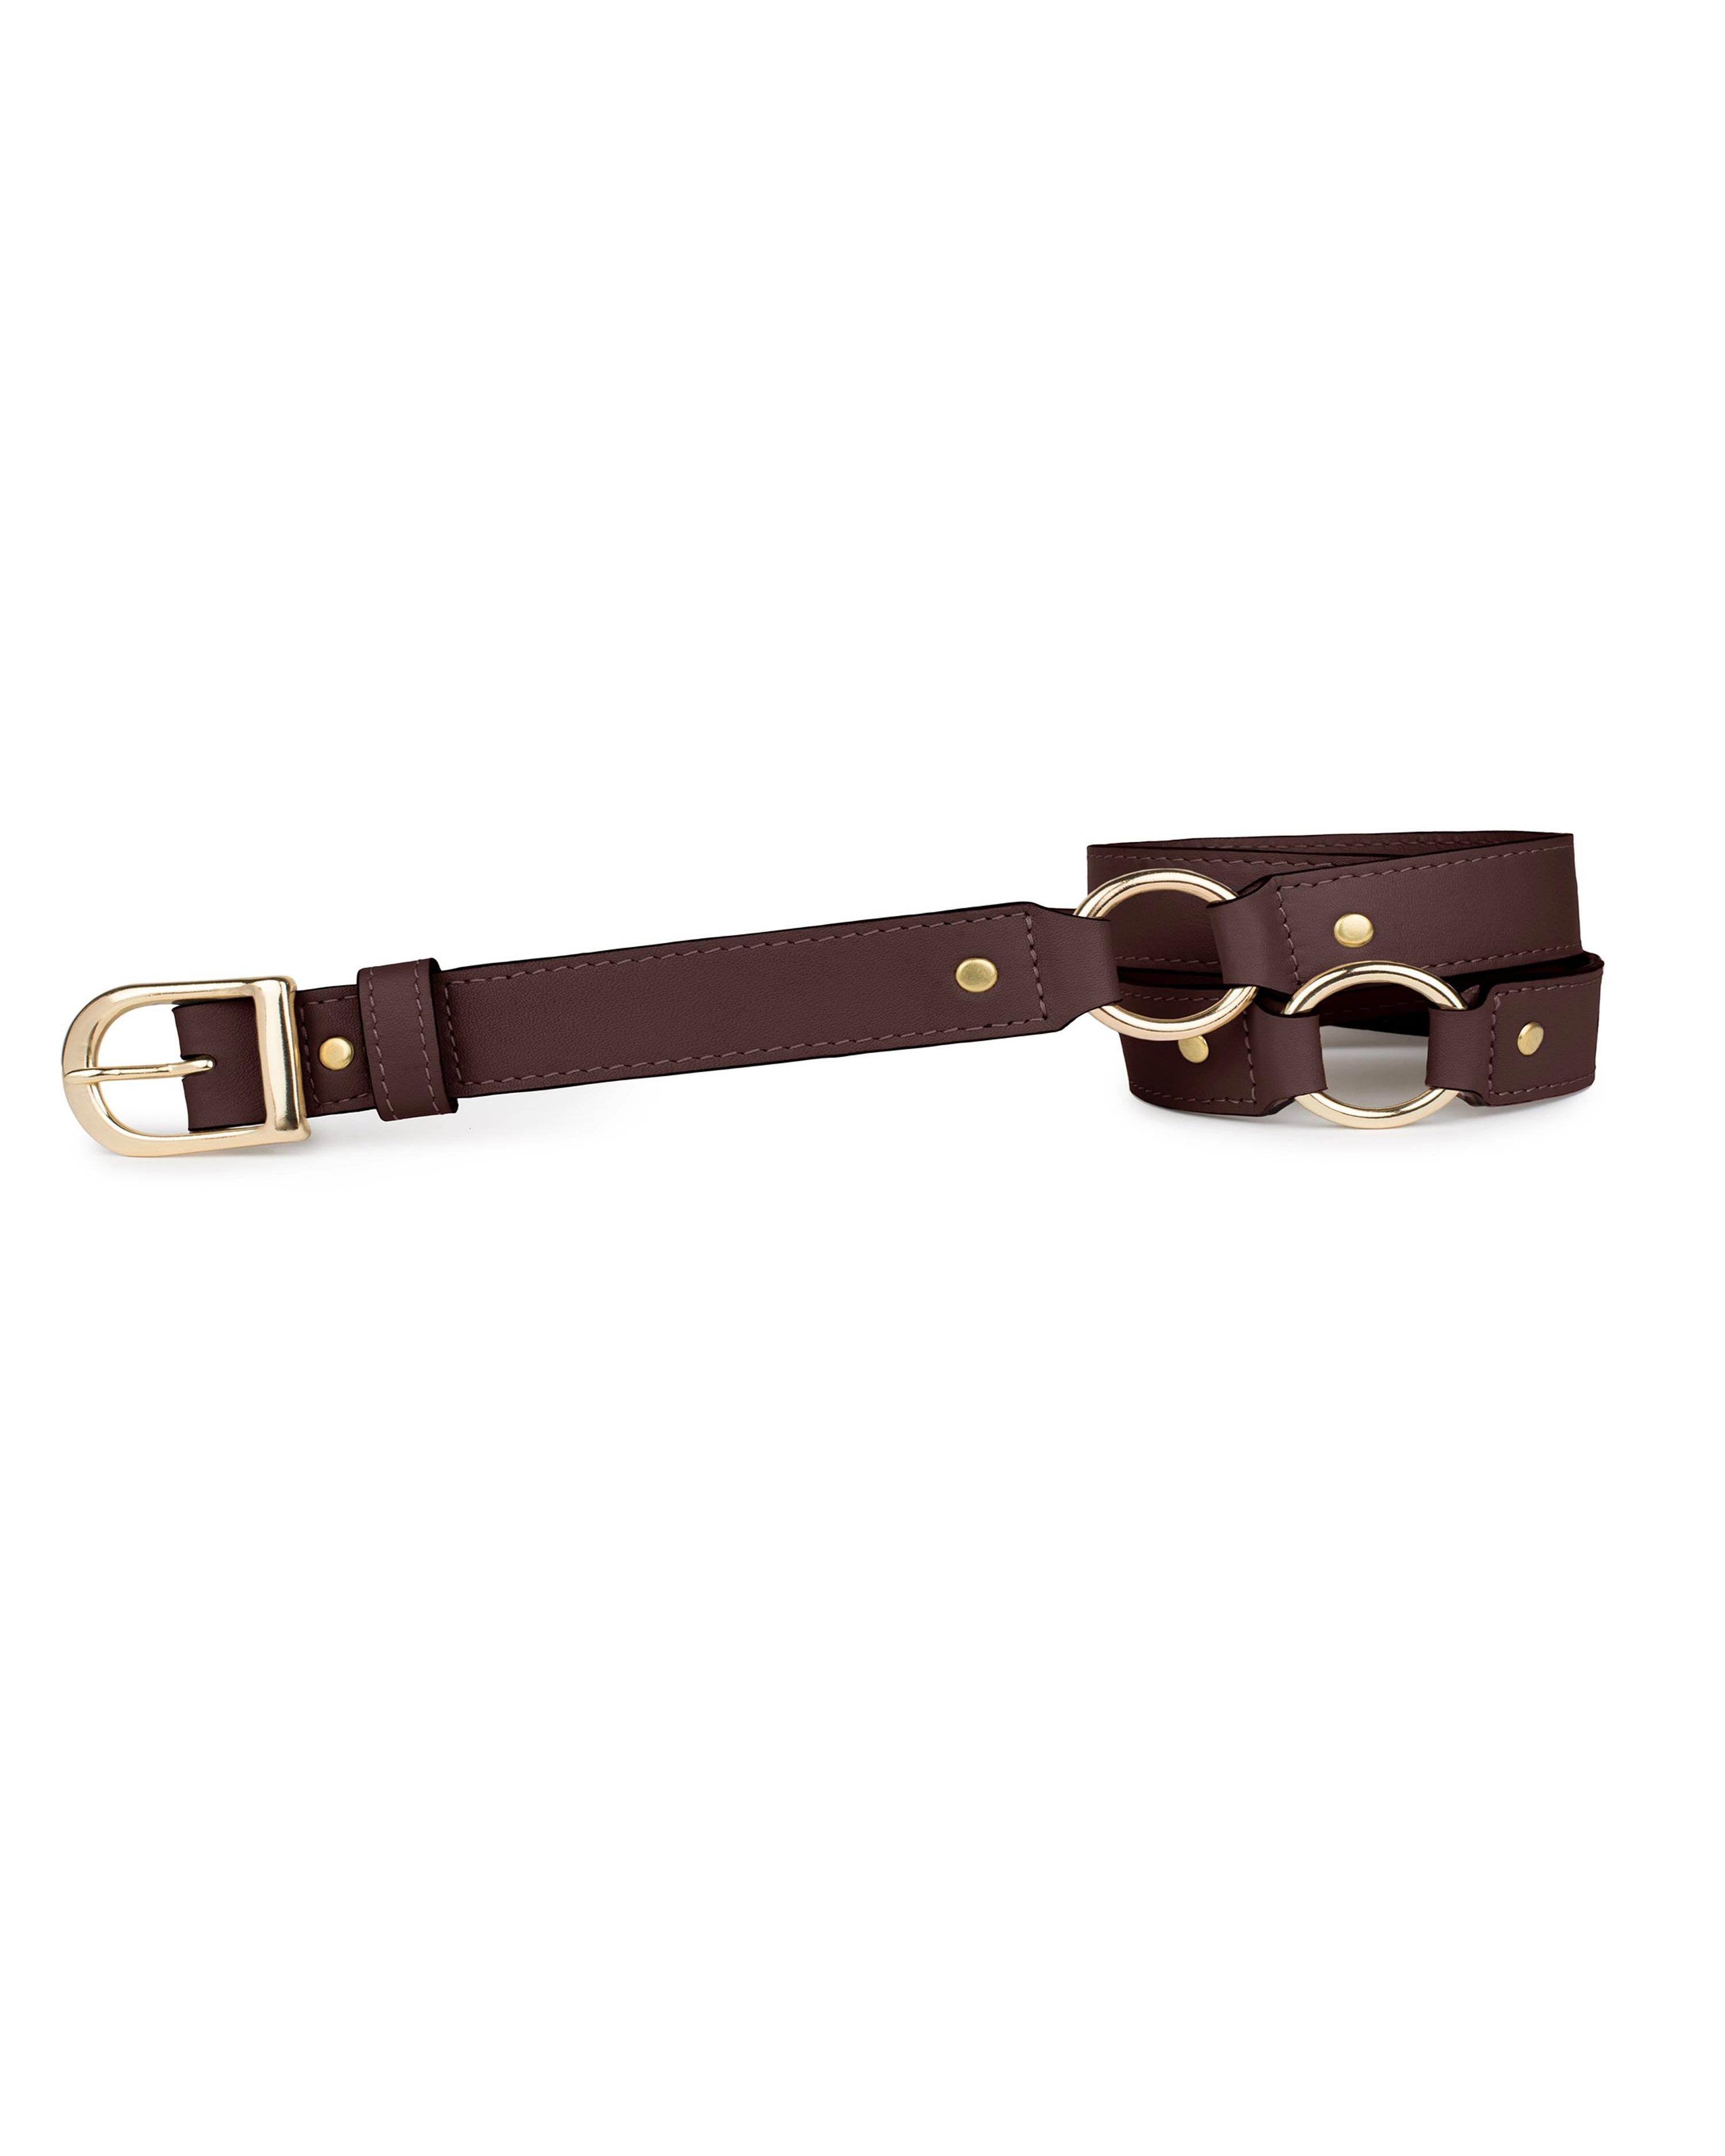 "3/4"" RING BELT in Chocolate Napa"